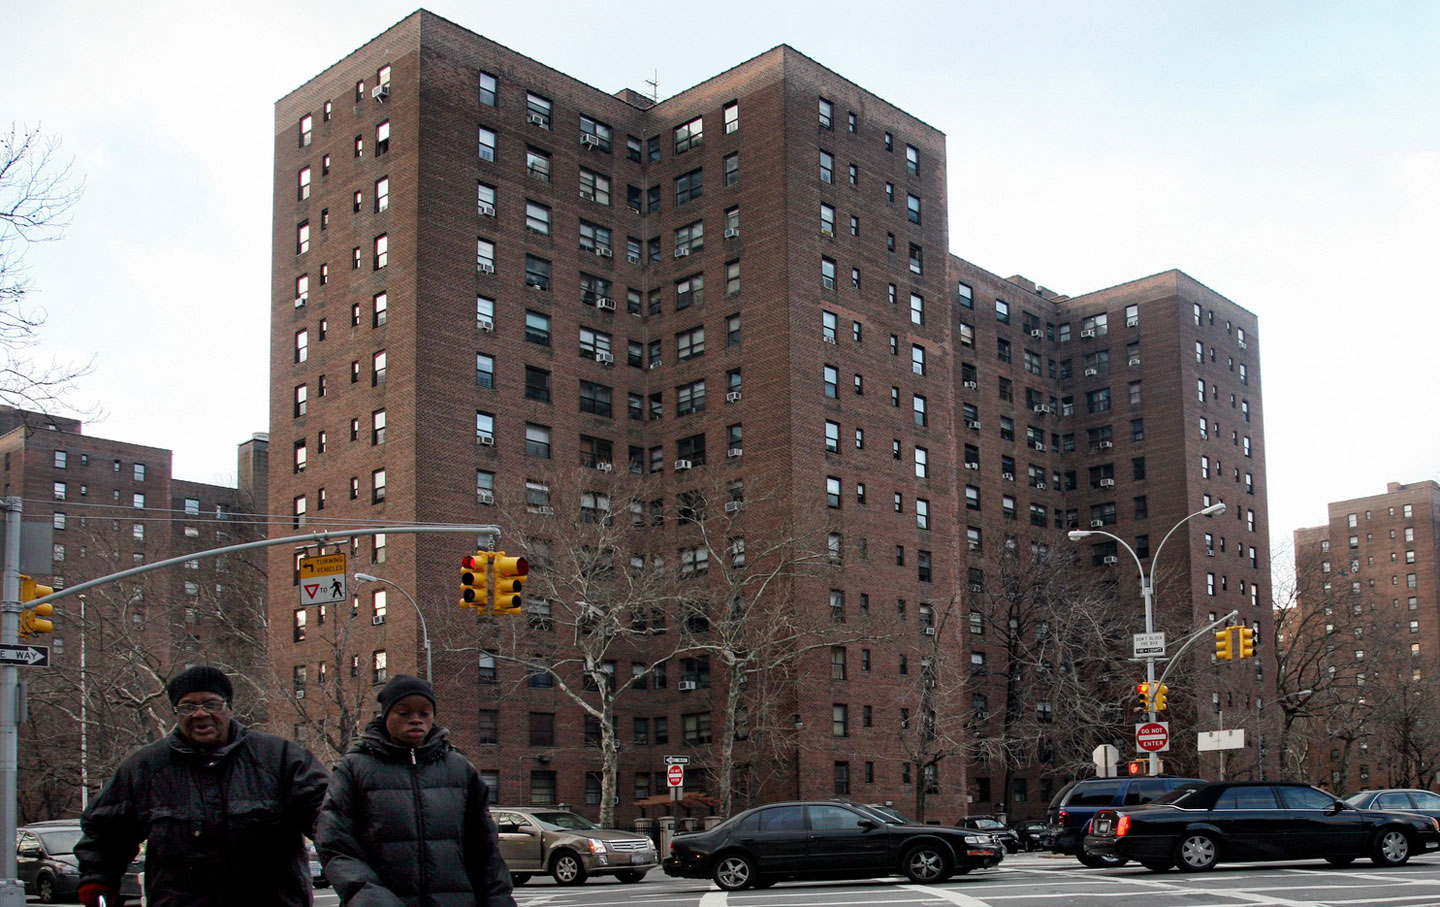 Harlem Housing Complex